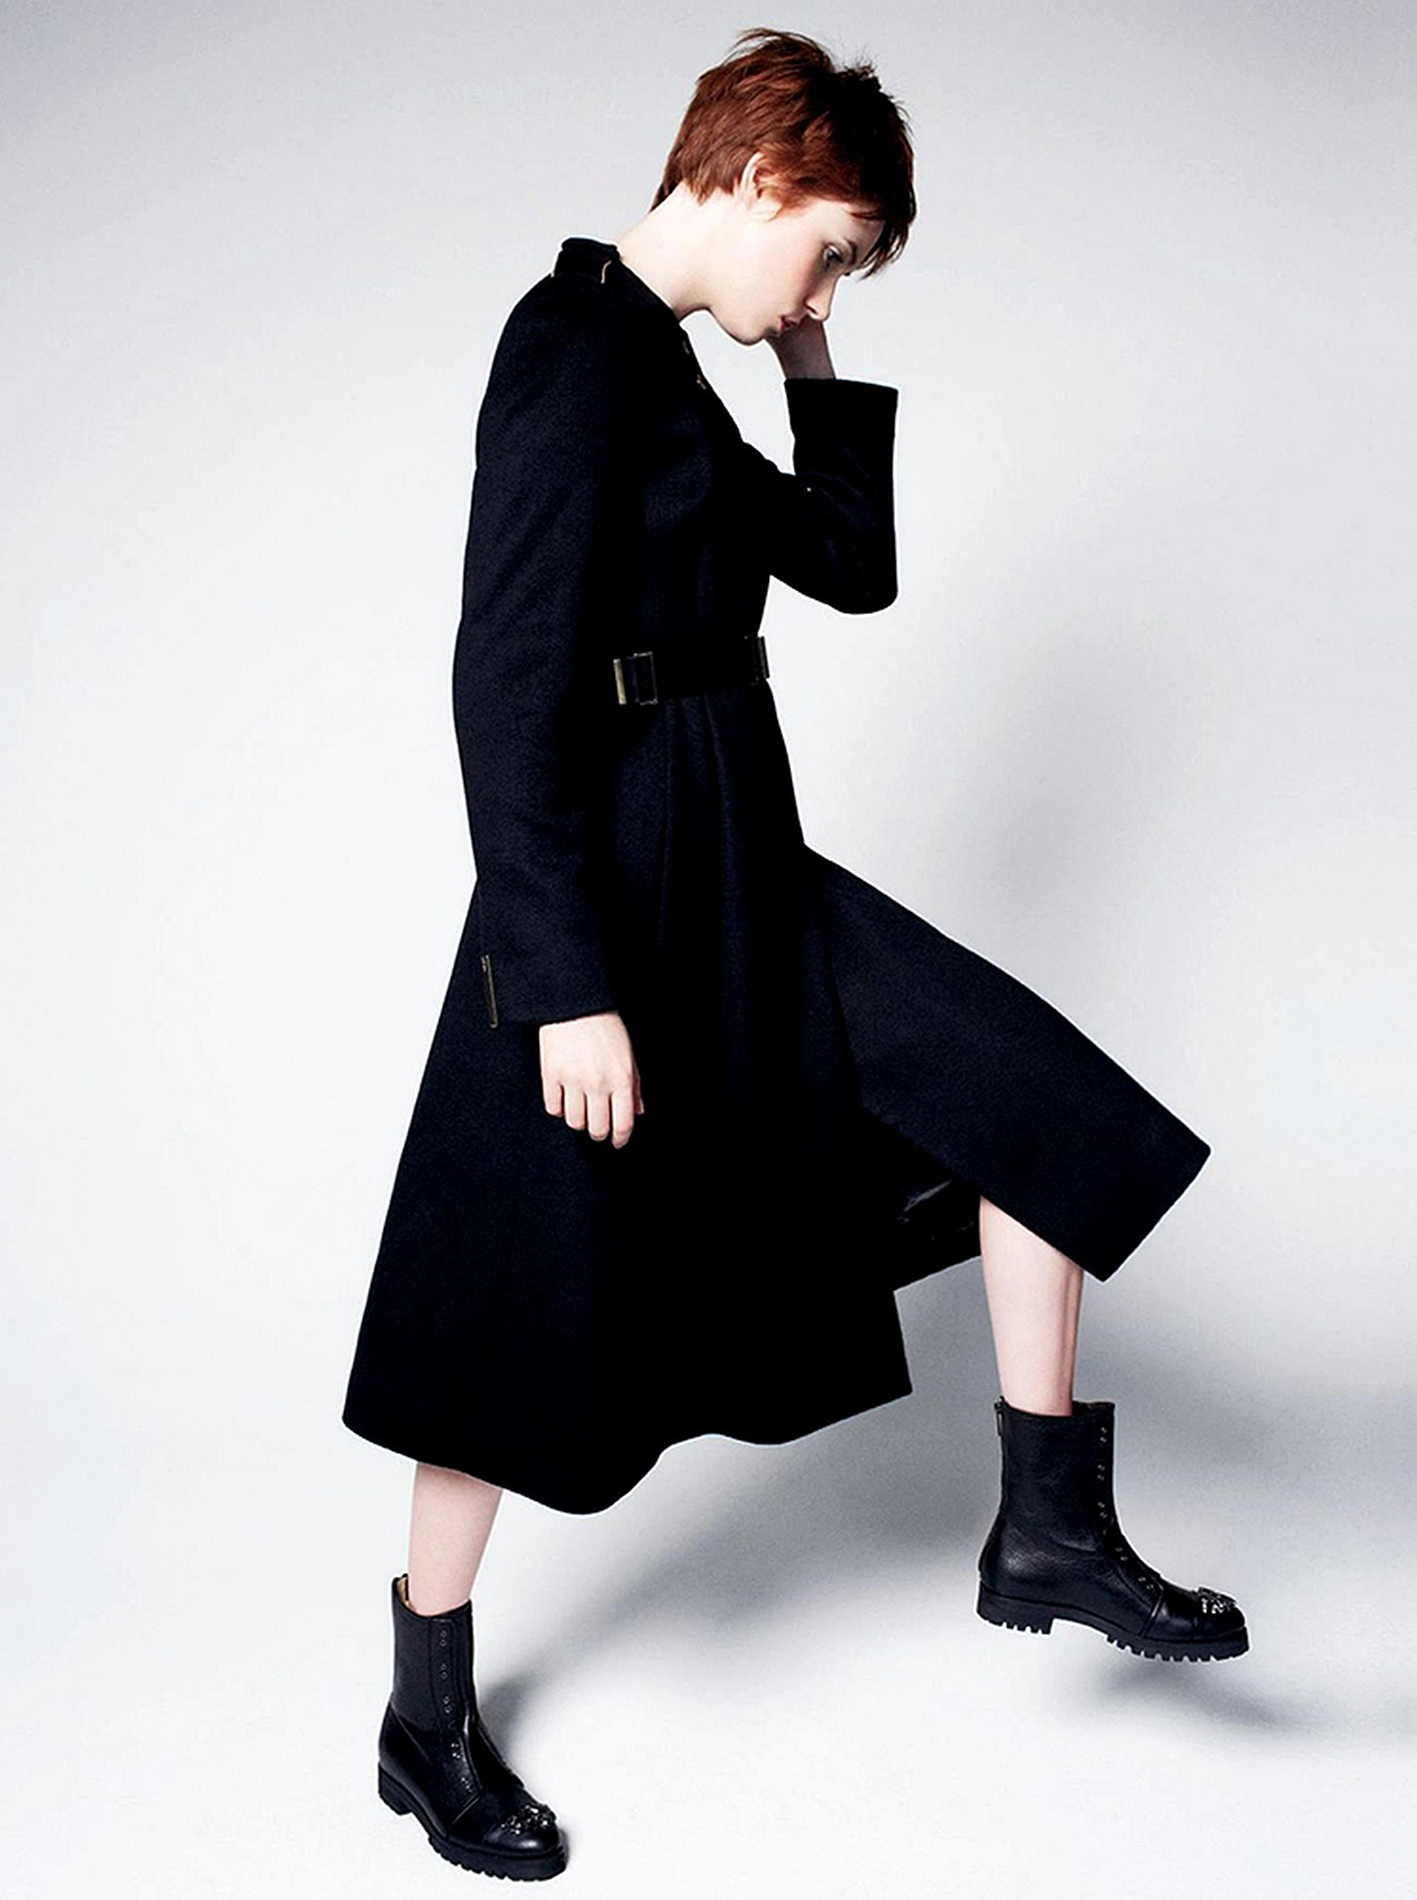 Karen Gillan for T. N. Photoshoot for InStyle September 2014